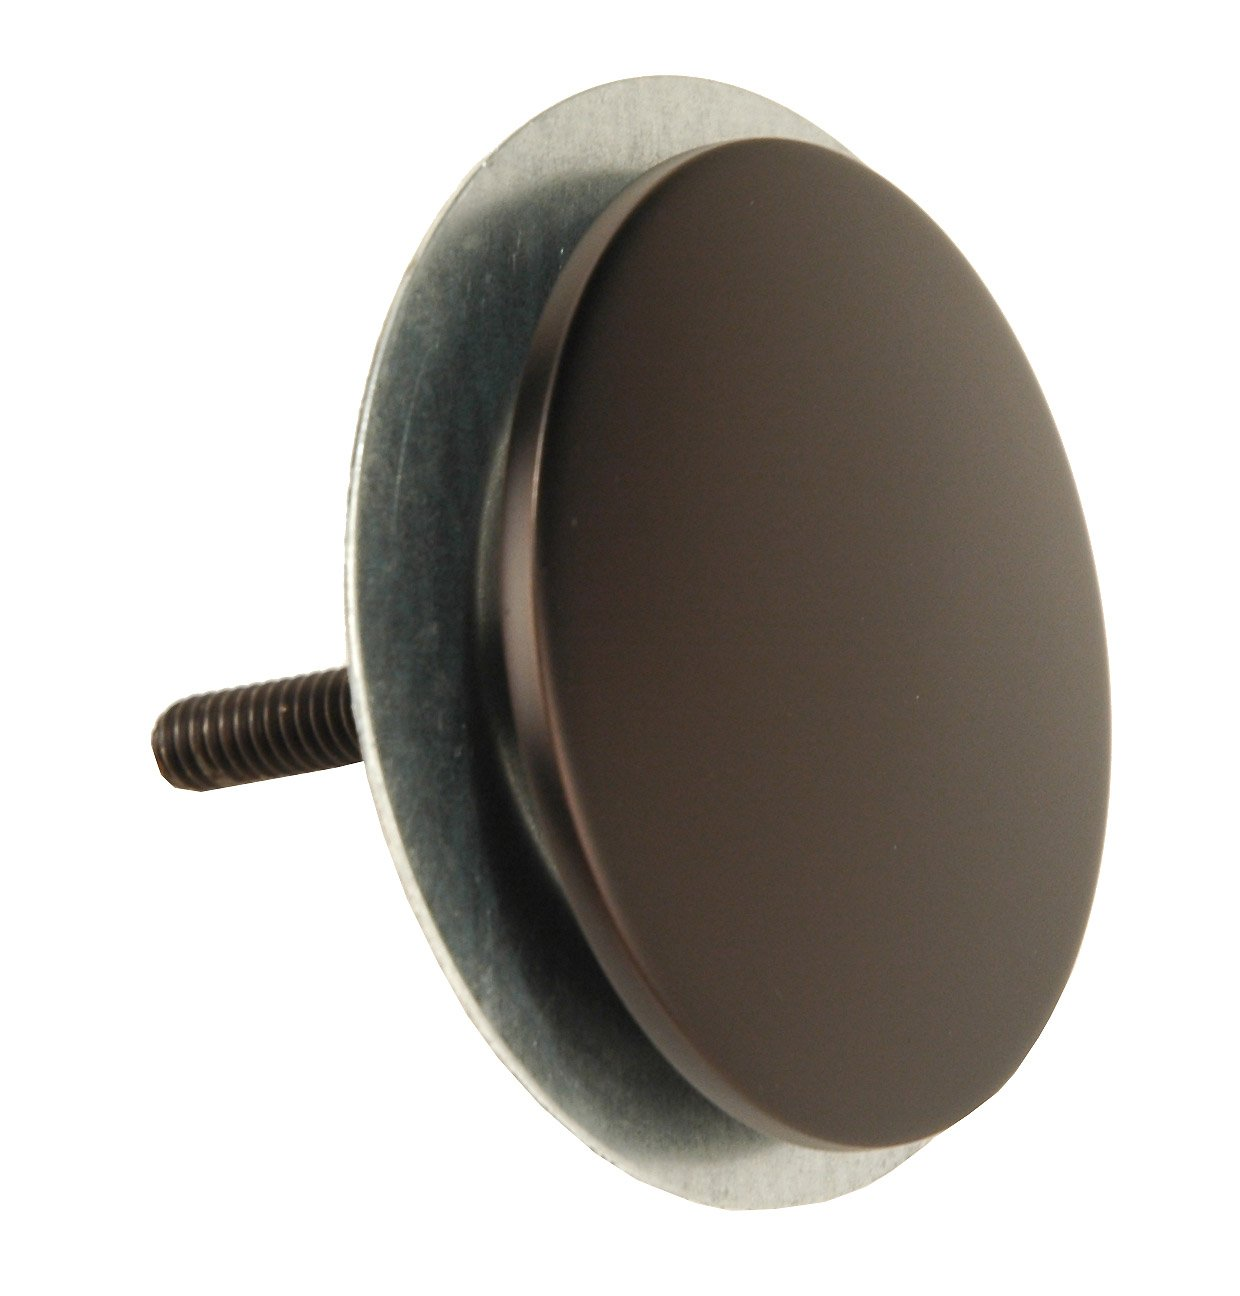 Faucet Hole Cover; Kitchen Sink Hole Cover, Oil Rubbed Bronze Finish - By Plumb USA 52024BOB PlumbUSA